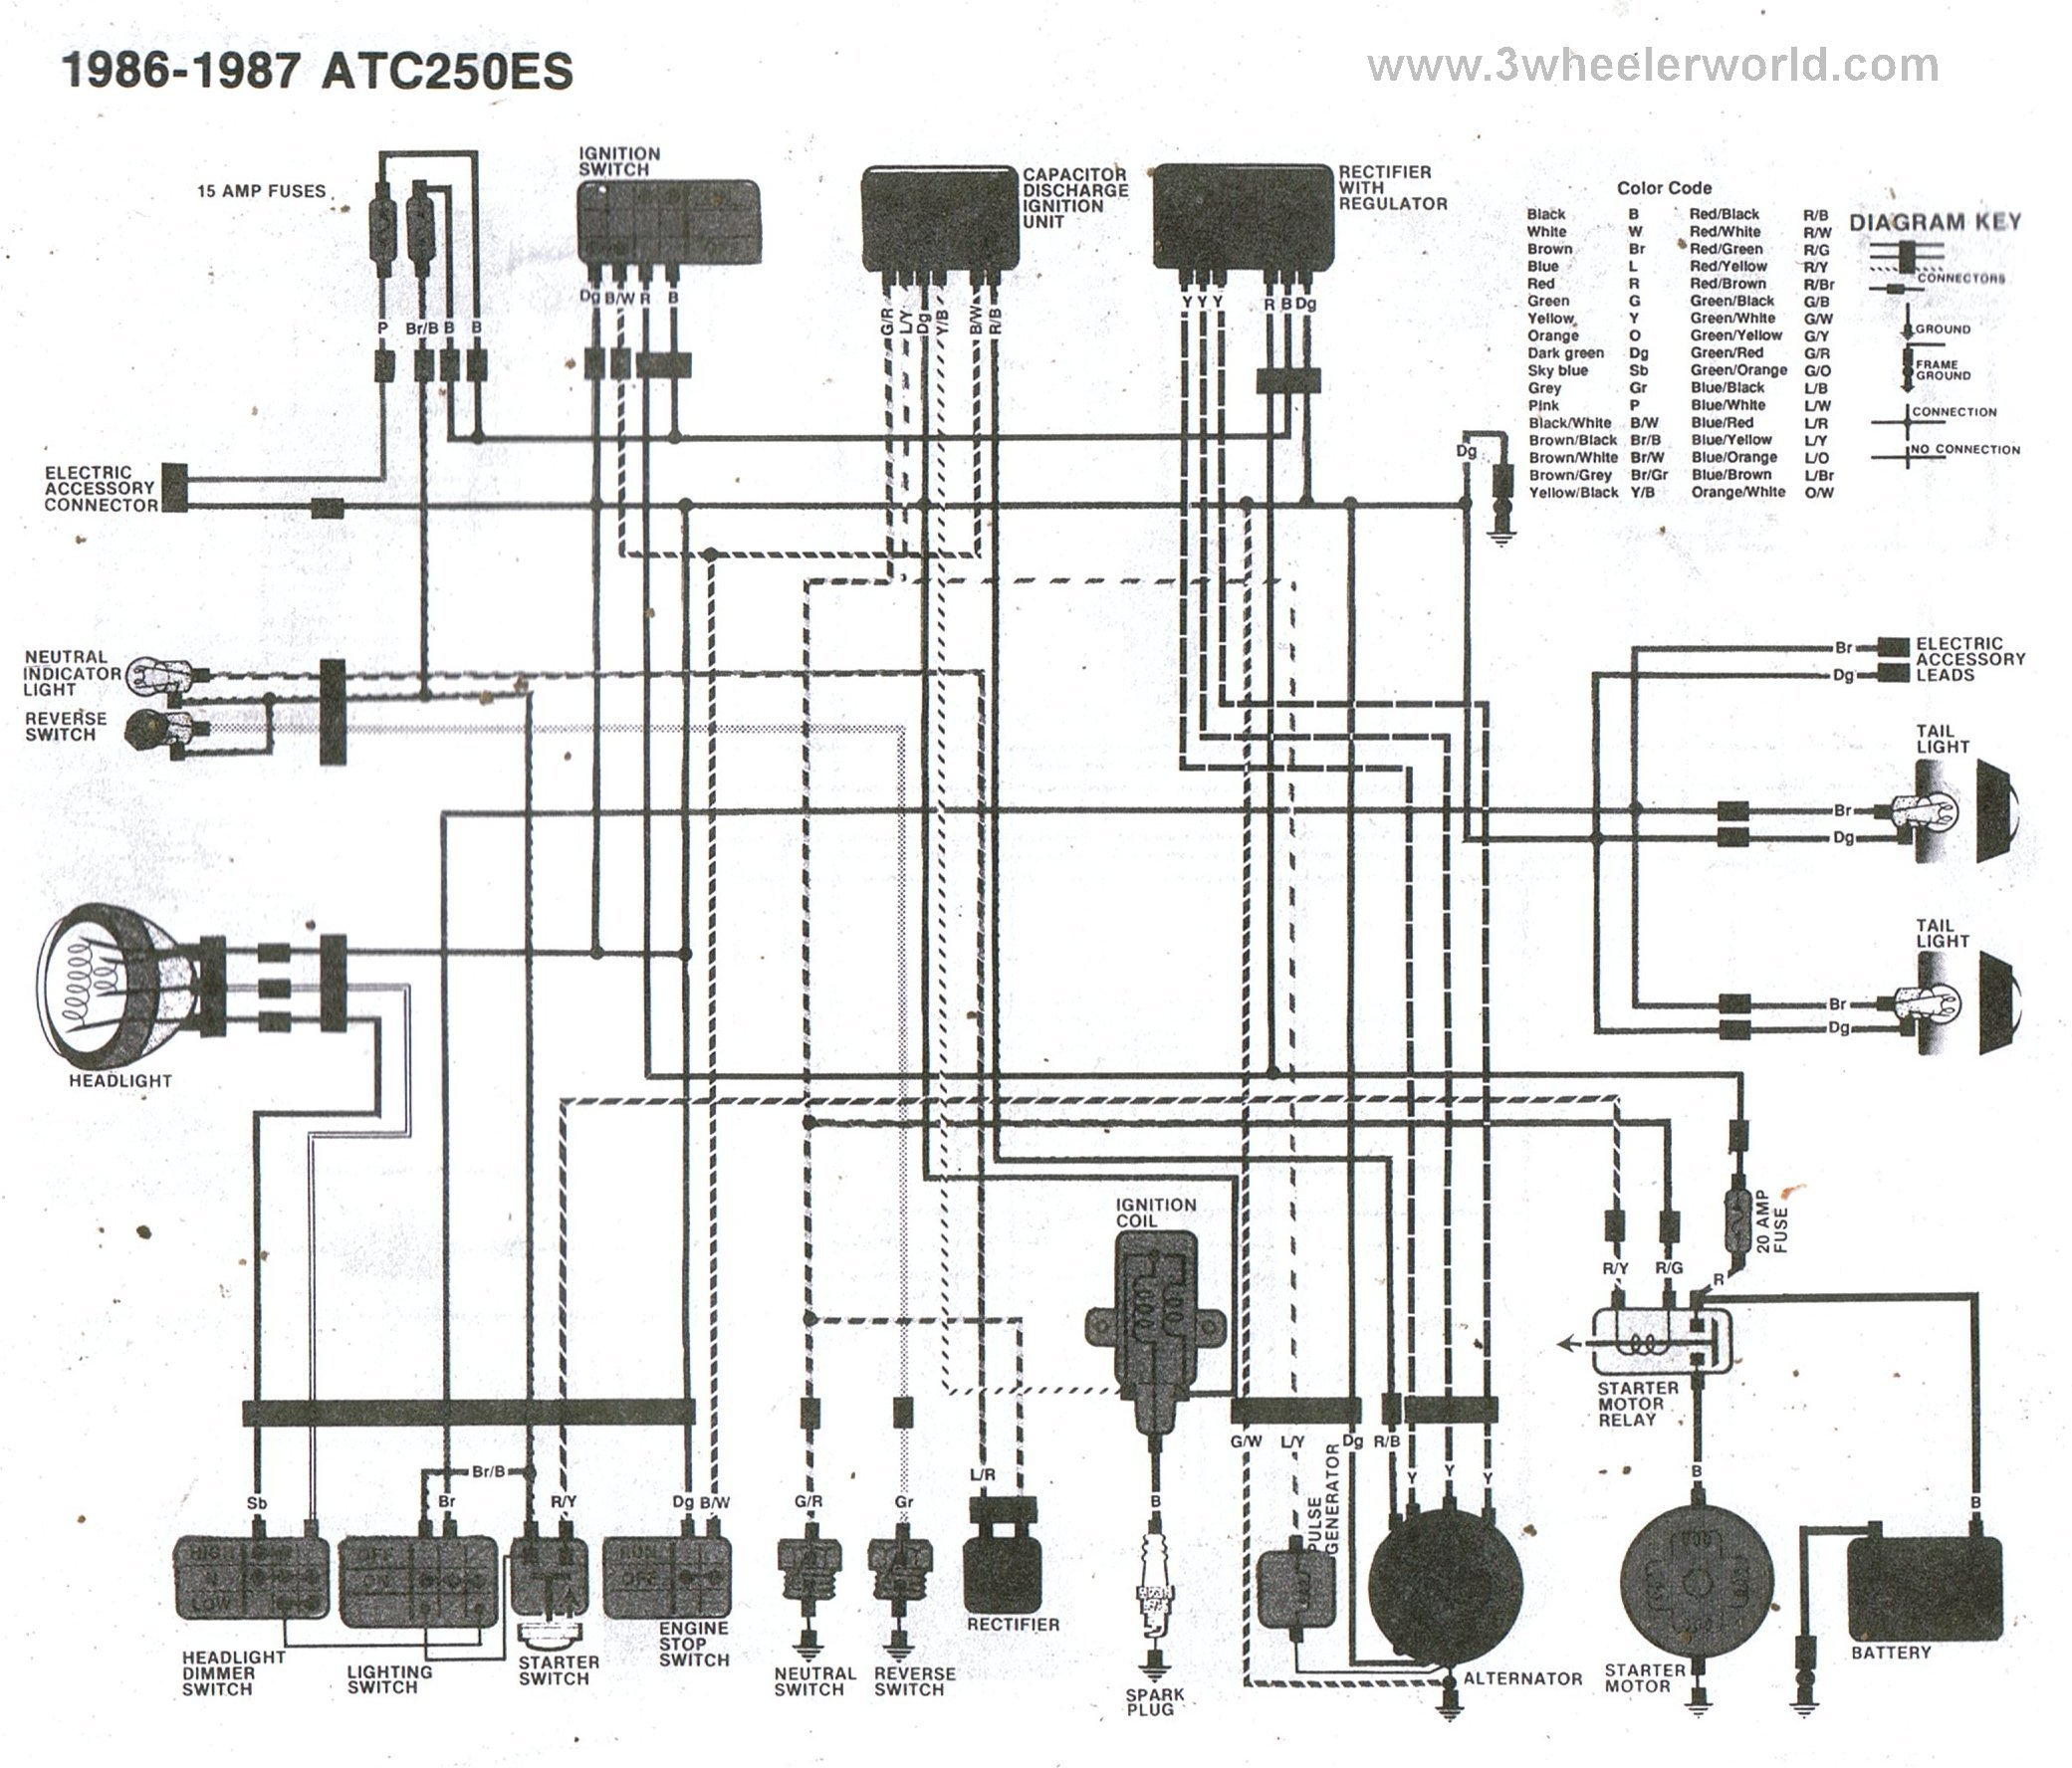 ATC250ESx86Thru87 3 wheeler world tech help honda wiring diagrams 1993 honda fourtrax 300 wiring diagram at fashall.co